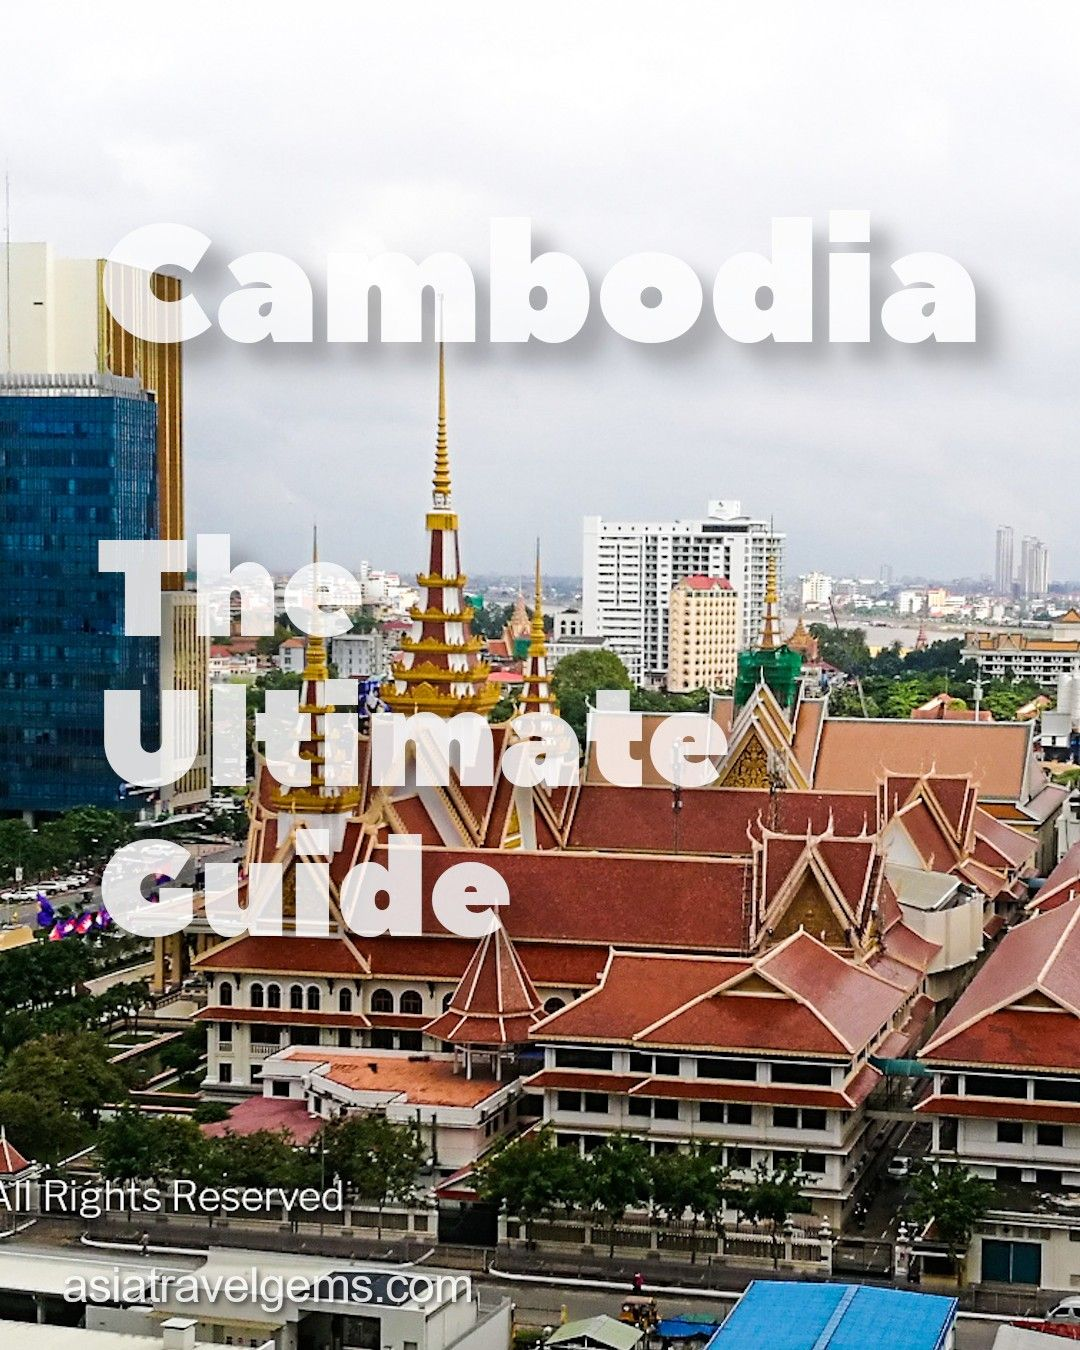 Cambodia - The Ultimate Guide. Read More - #cambodia #cambodian #cambodiatravel #cambodianfood #beautifulcambodia #visitcambodia #phnompenh #siemreap #mekong #mekongrier #mekongdelta #angkor #angkorwat #angkortemples #goldentpalace #travelasia #asiatravel #travel #digitalnomad #holiday #vacation